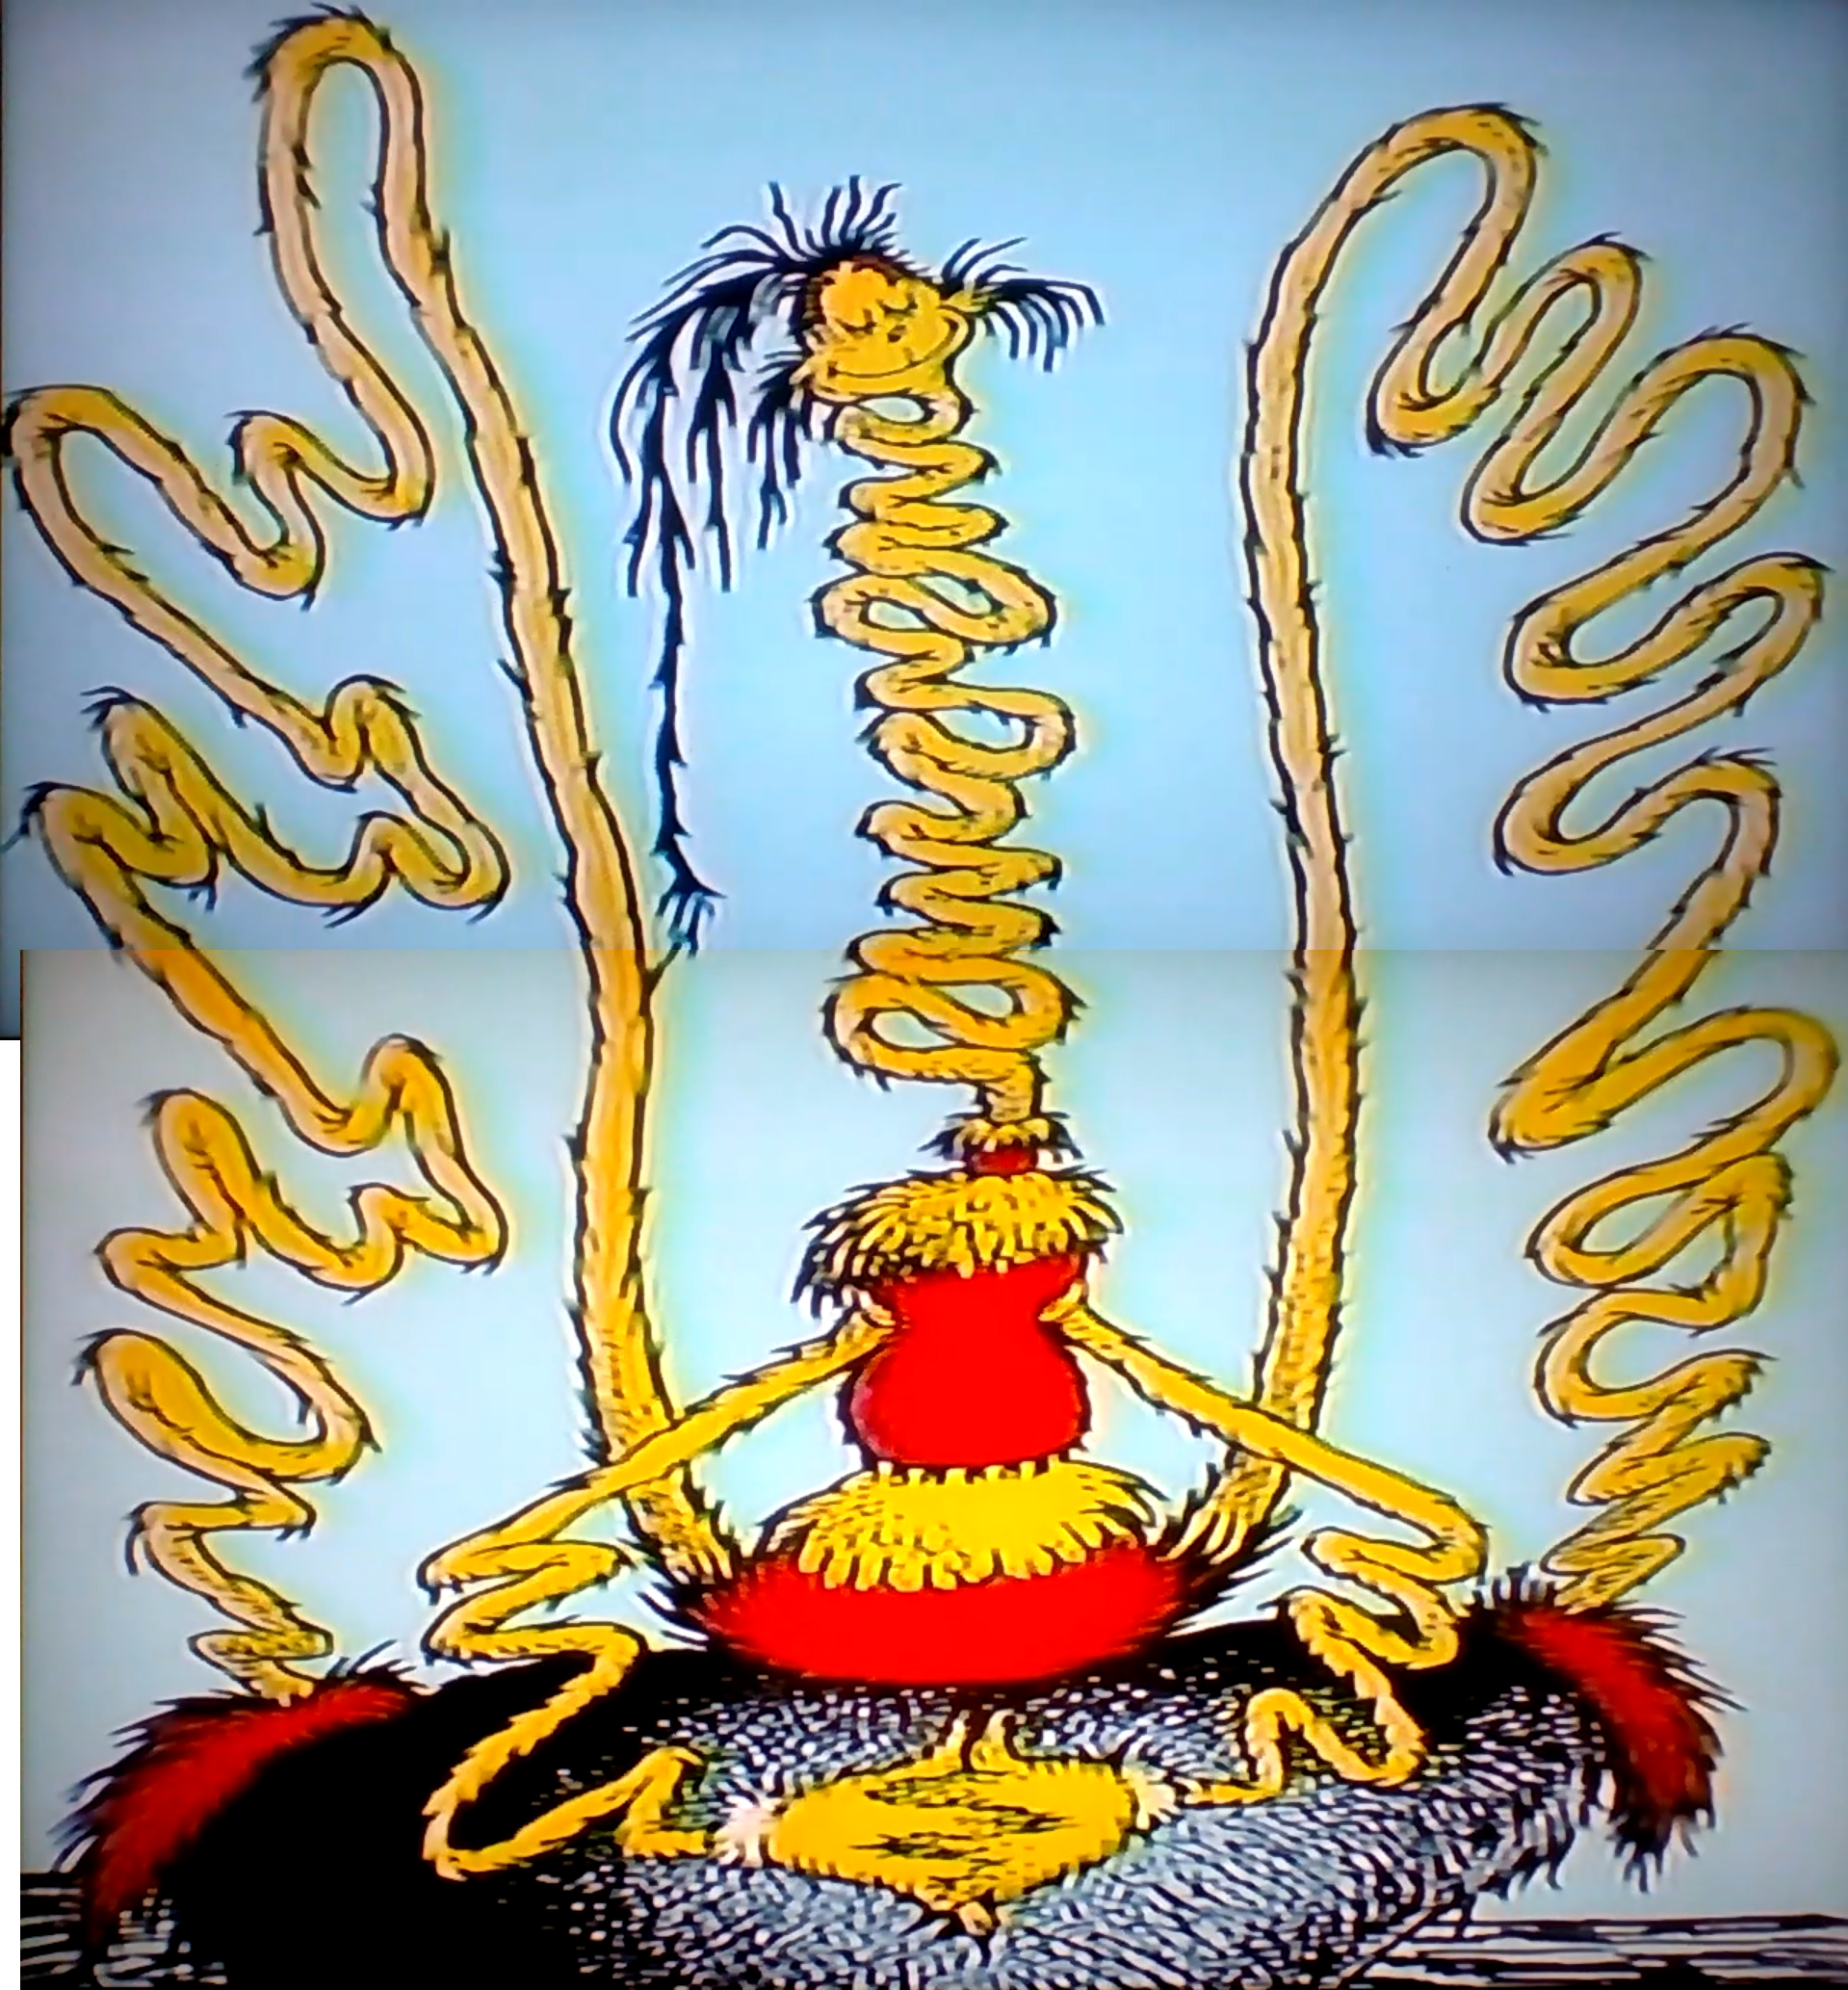 Dr Seuss The Lorax Full Movie In English: Dr. Seuss's Sleep Book (85).png